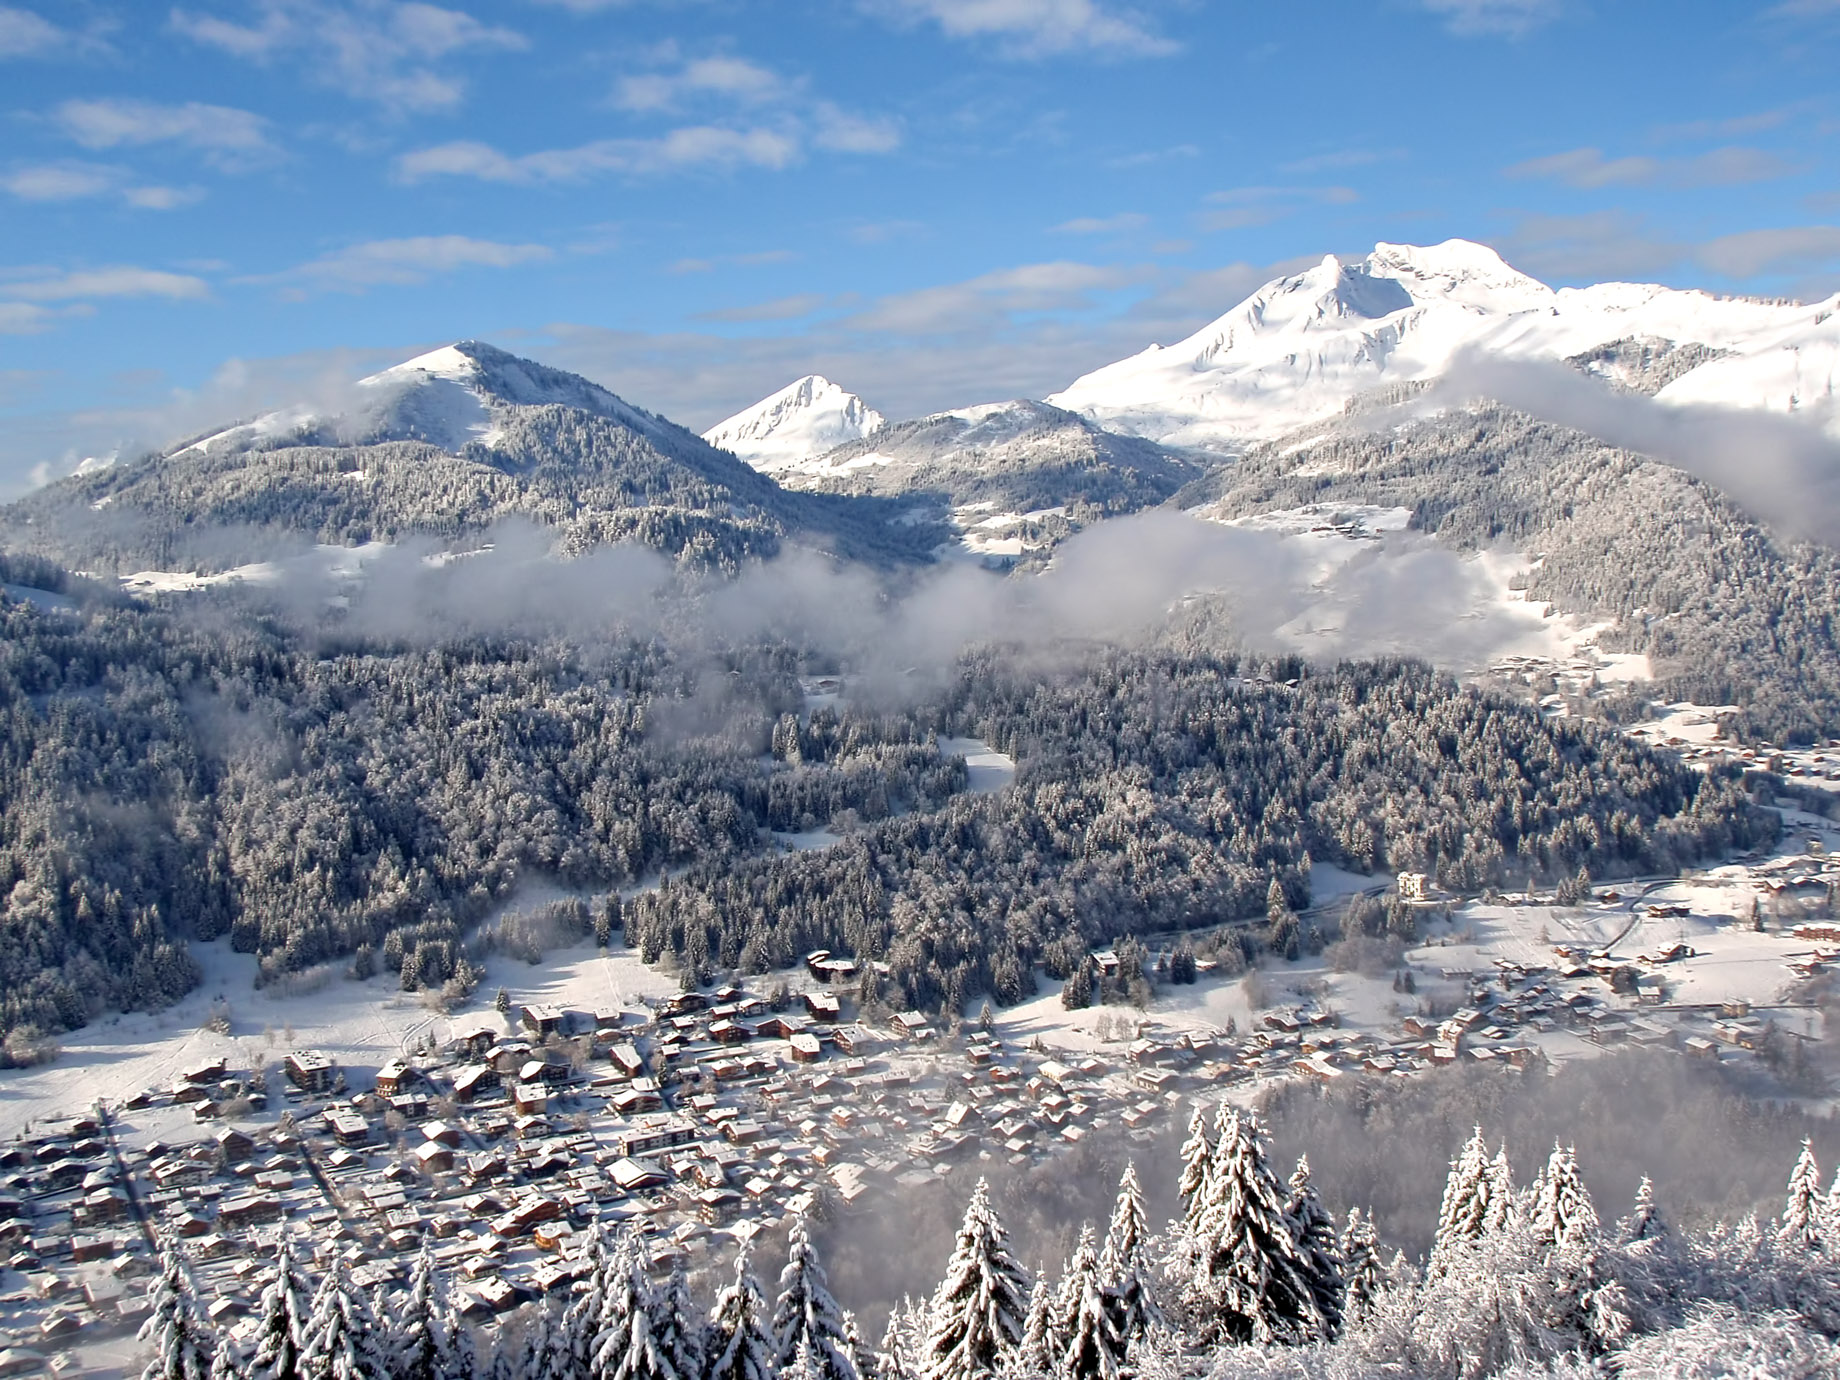 Morzine - French Alps Mountain Resort - An Exclusive Très Chic Luxury Winter Paradise